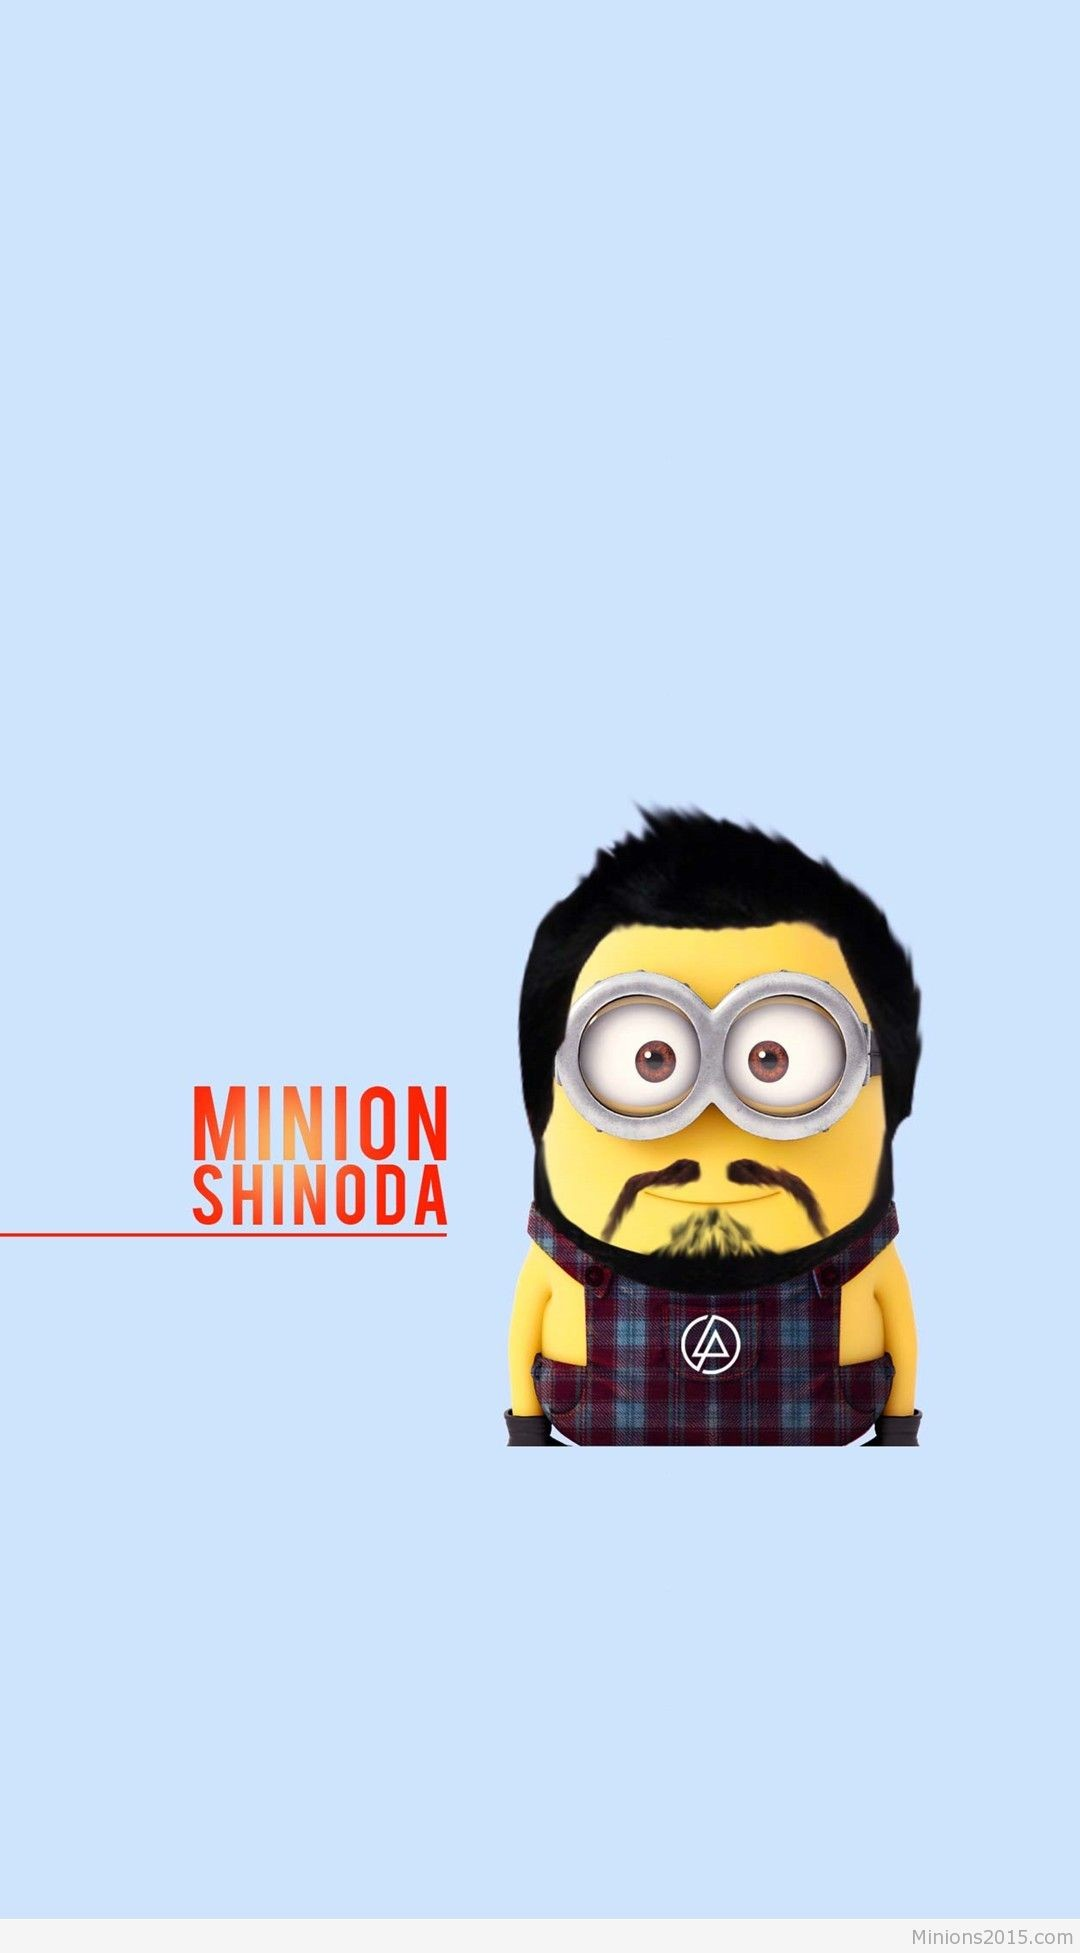 funny minion shinoda iphone 6 plus wallpaper for 2014 halloween –  despicable me apple-f35805.  despicable_me_2_gif___lucy_s_funny_face_by_vanessagiratina- …